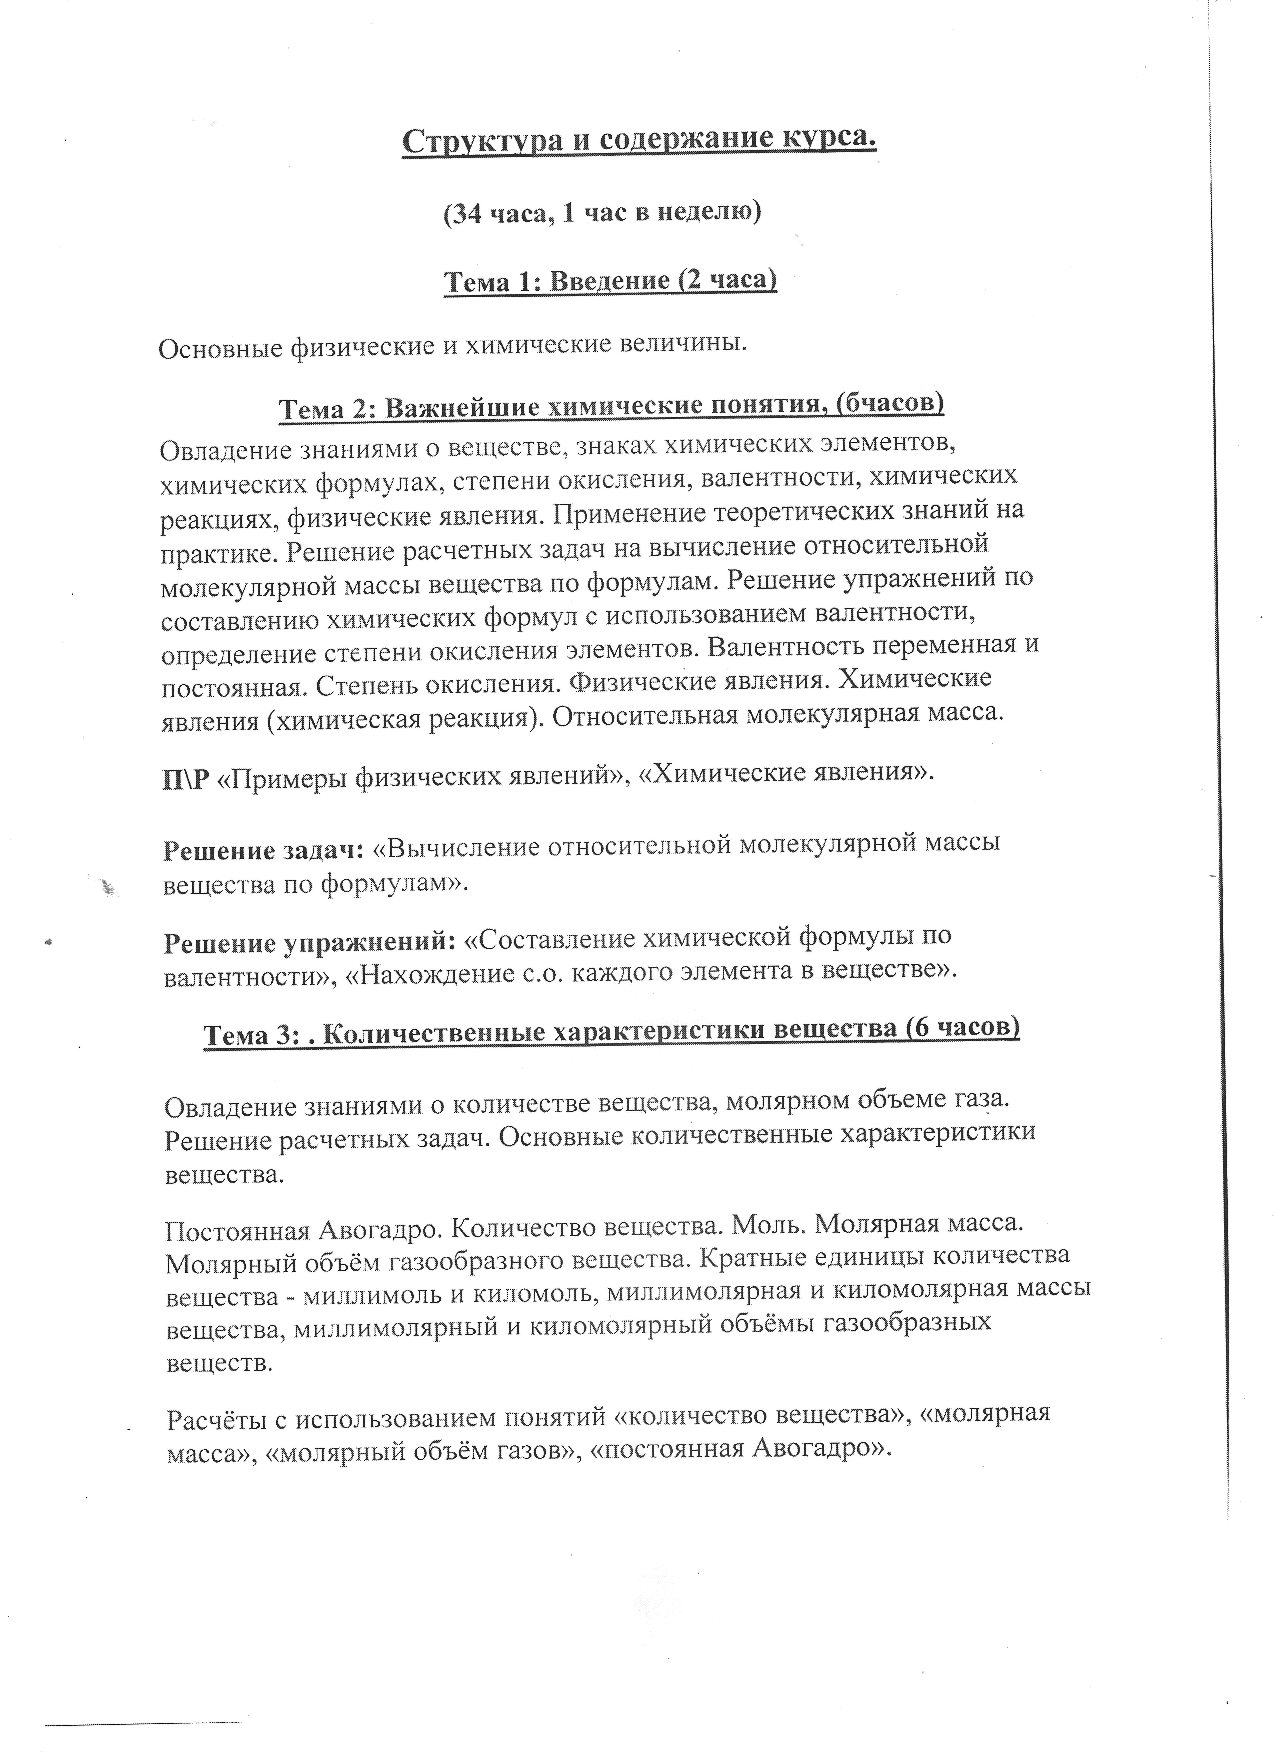 C:\Users\admin\Pictures\Новая папка\img061.jpg